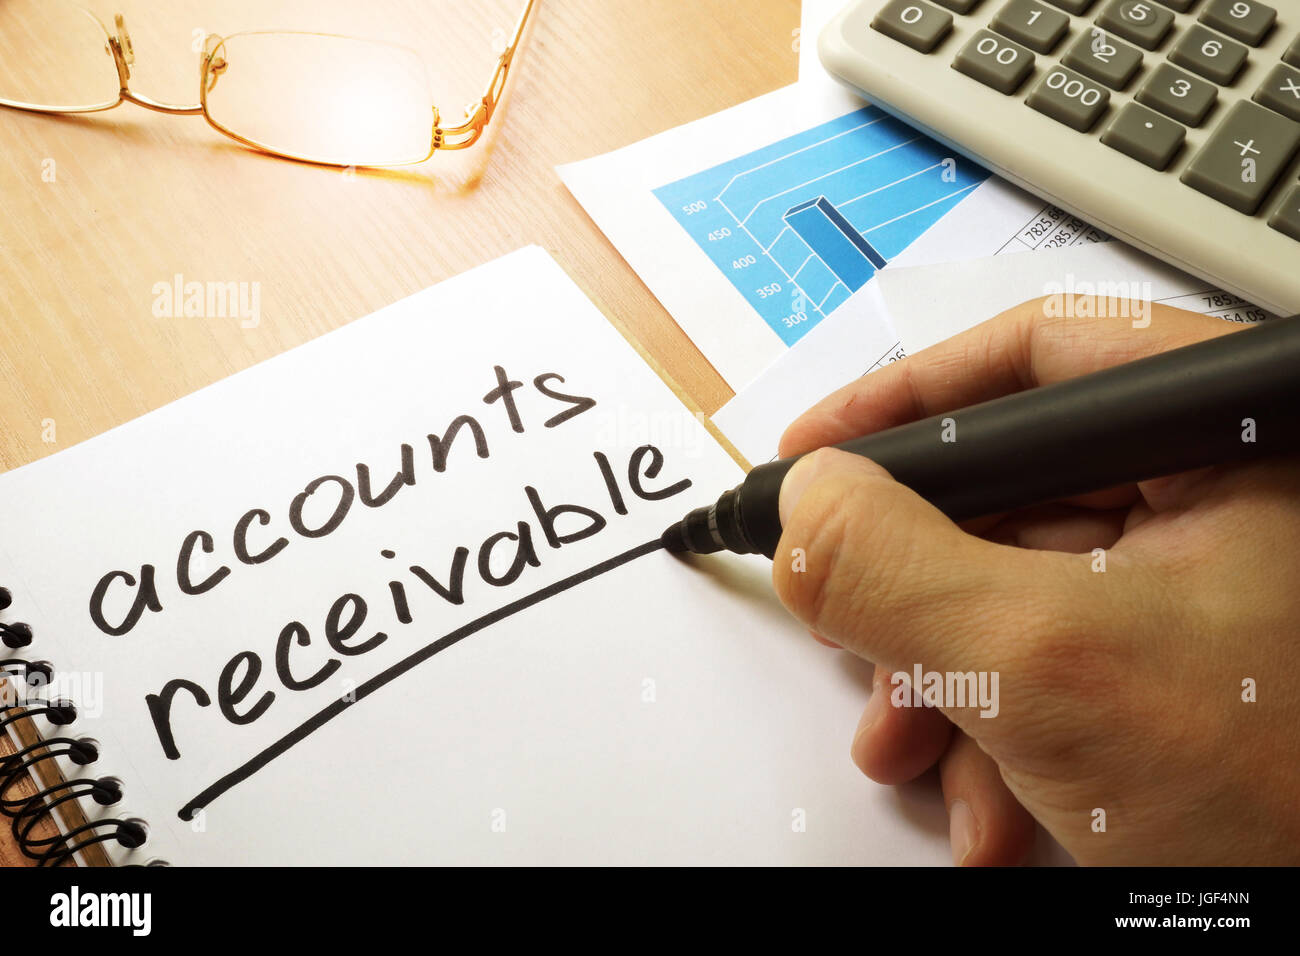 Accounts receivable written by hand in a note. - Stock Image